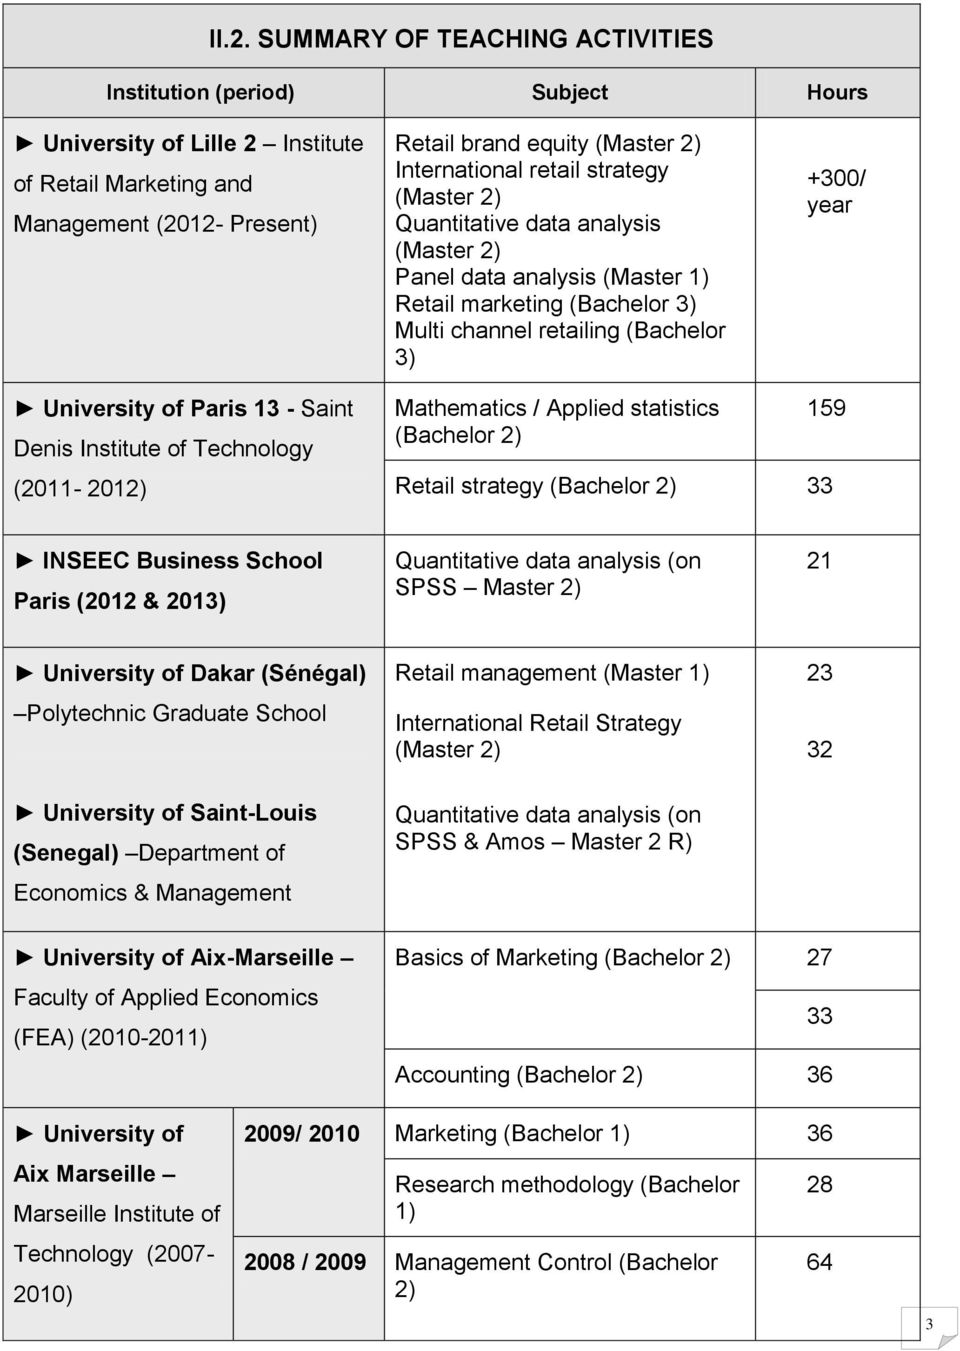 Saint Denis Institute of Technology (2011-2012) Mathematics / Applied statistics (Bachelor 2) 159 Retail strategy (Bachelor 2) 33 INSEEC Business School Paris (2012 & 2013) Quantitative data analysis